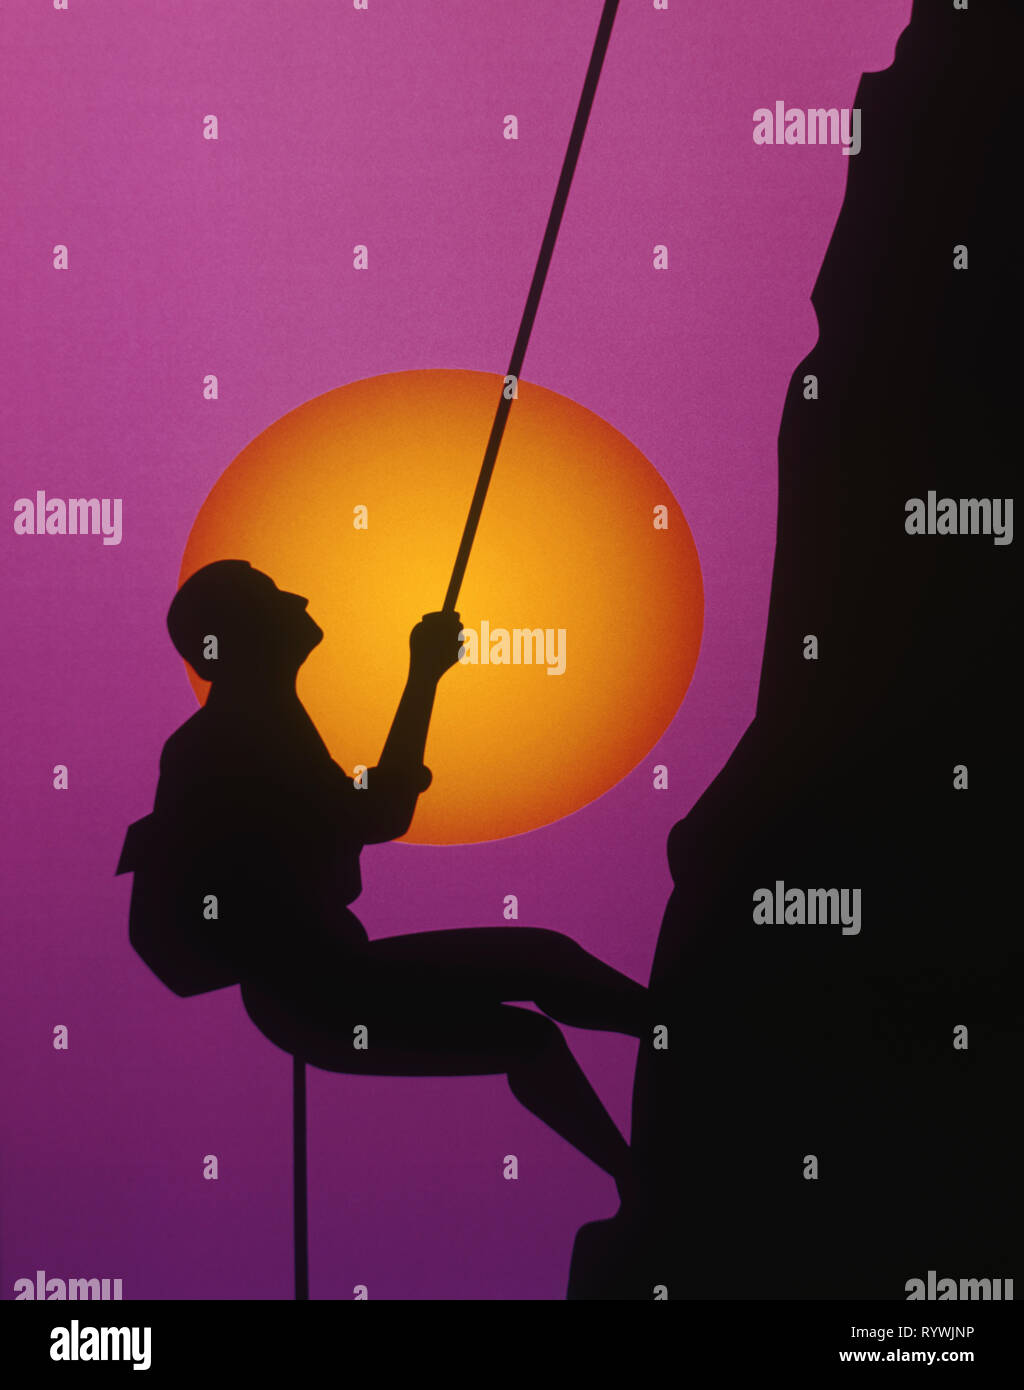 Graphic Design Rock Climbing Immagini Stock